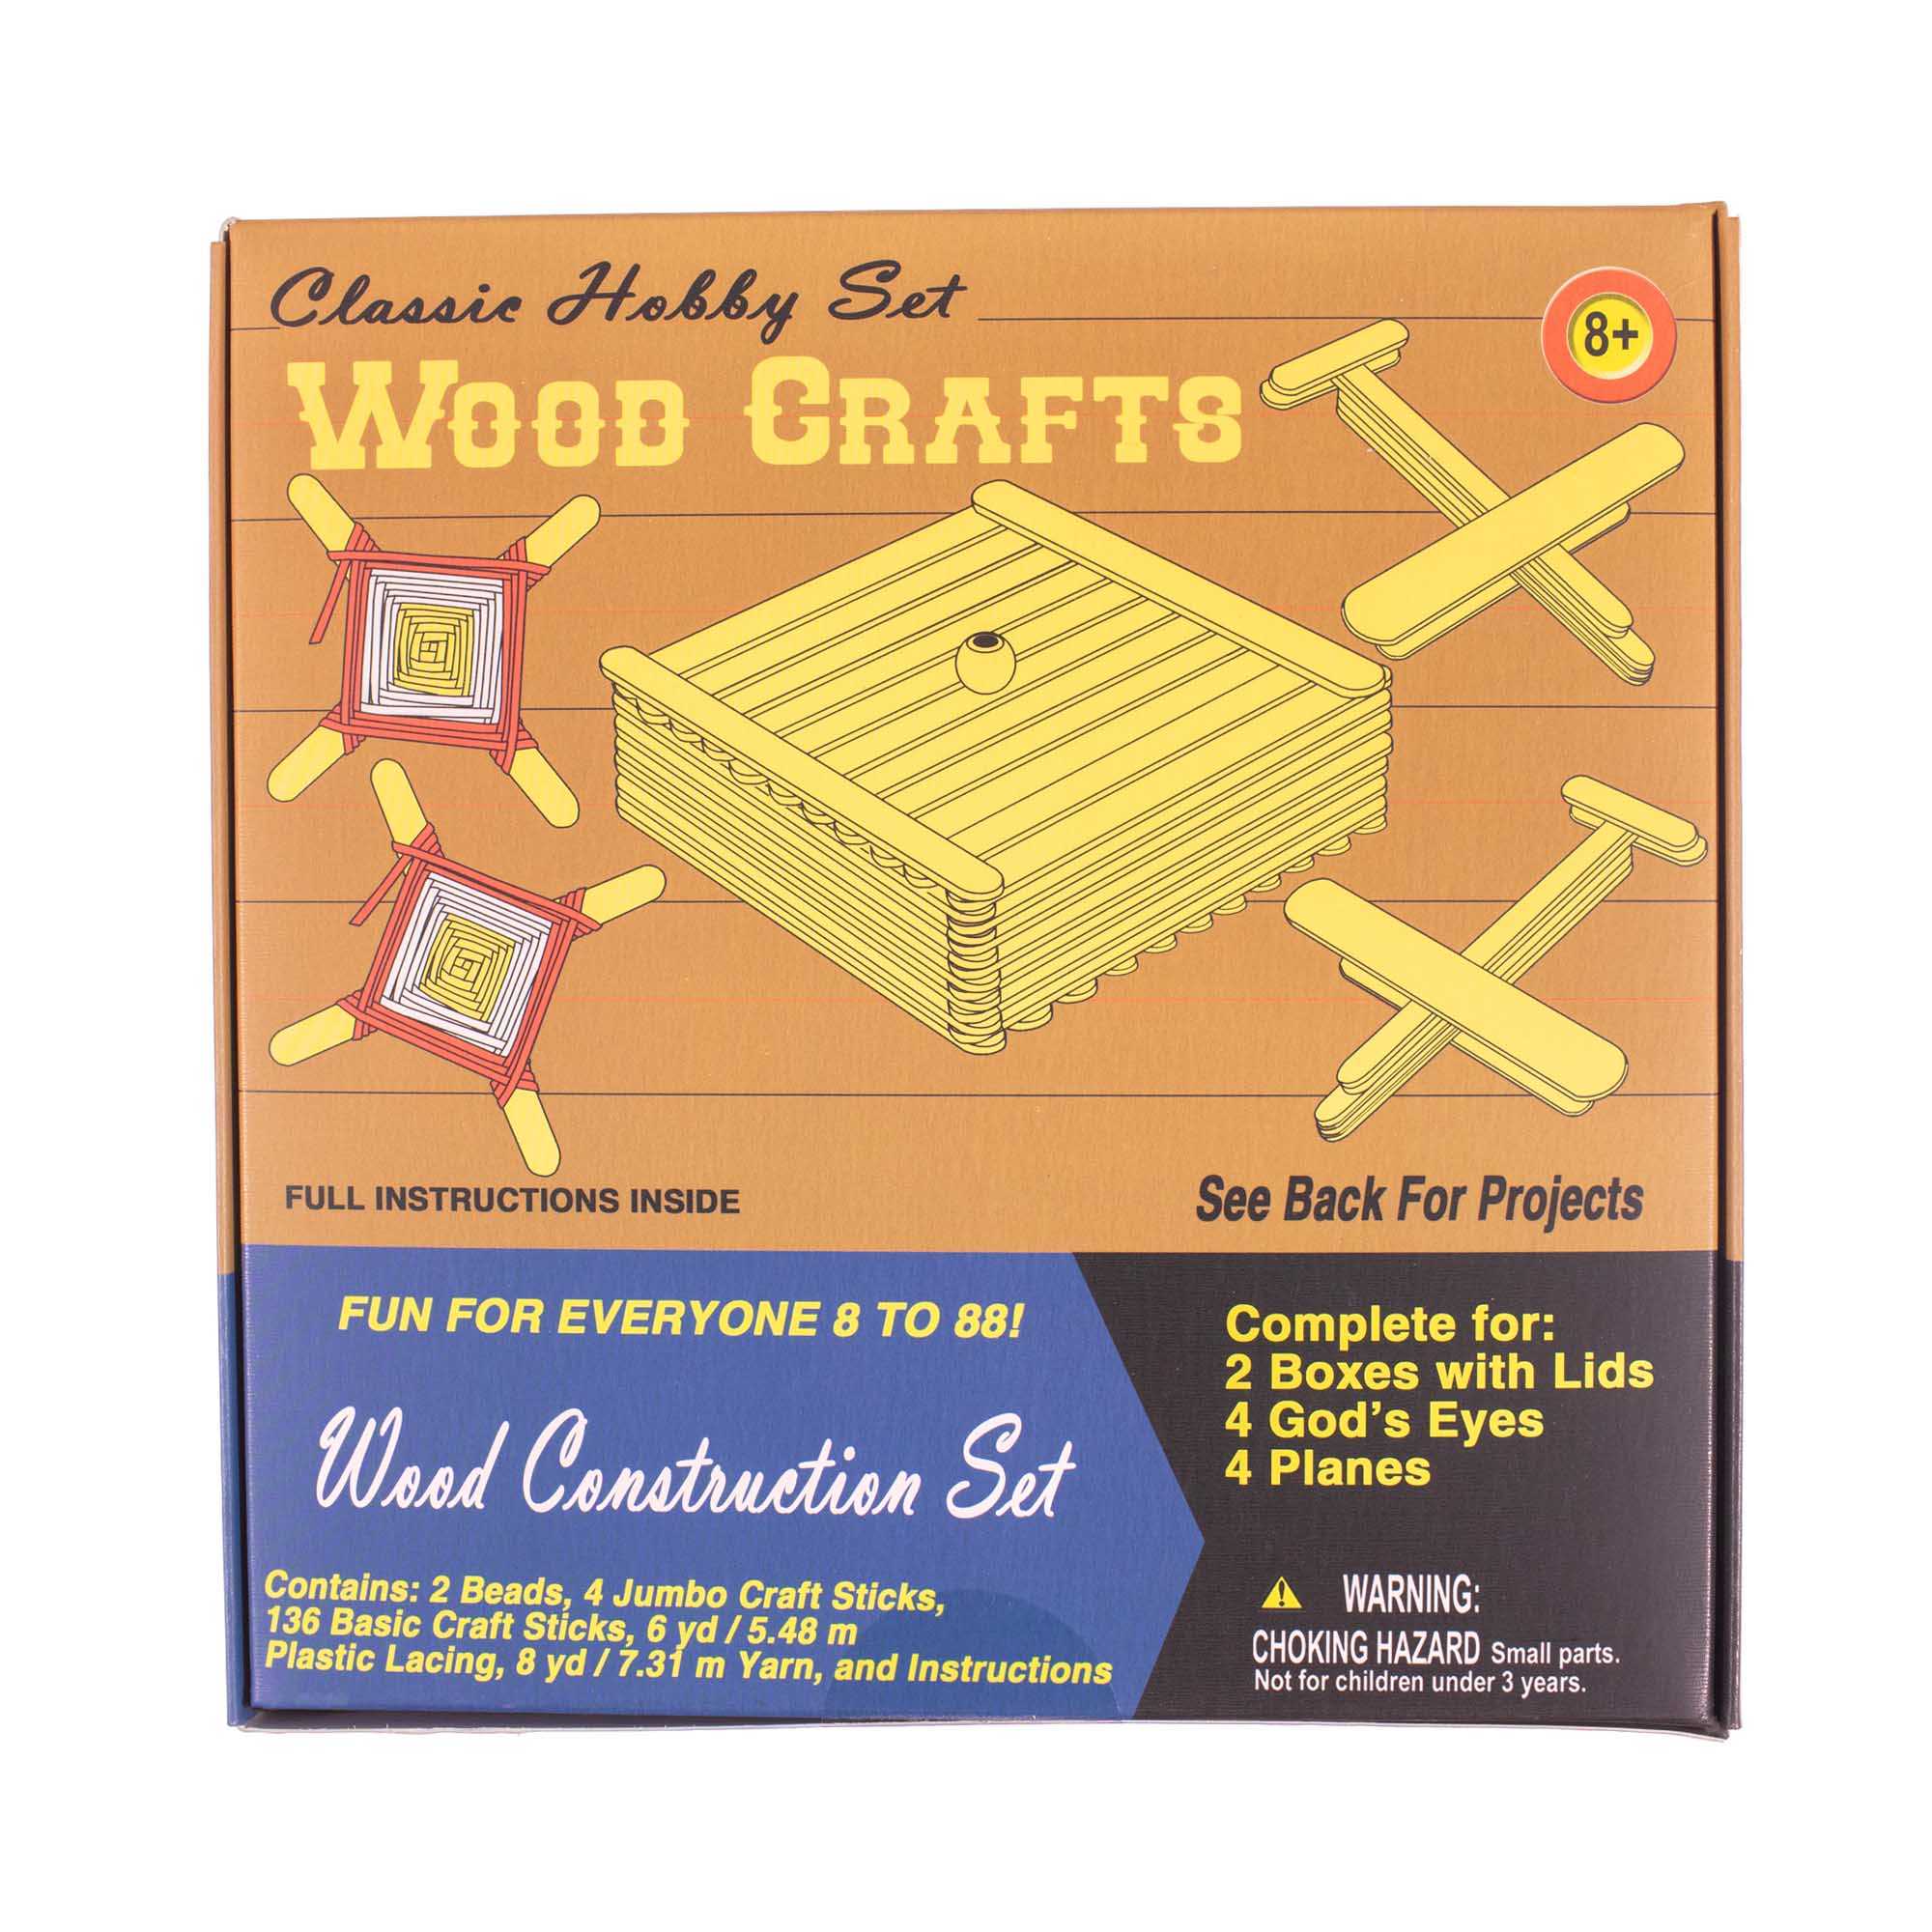 Retro Crafting Kits Choose From 5 Different Crafting Kits Make Bracelets Dream Catchers Airplanes Keychains And Much More Walmart Com Walmart Com